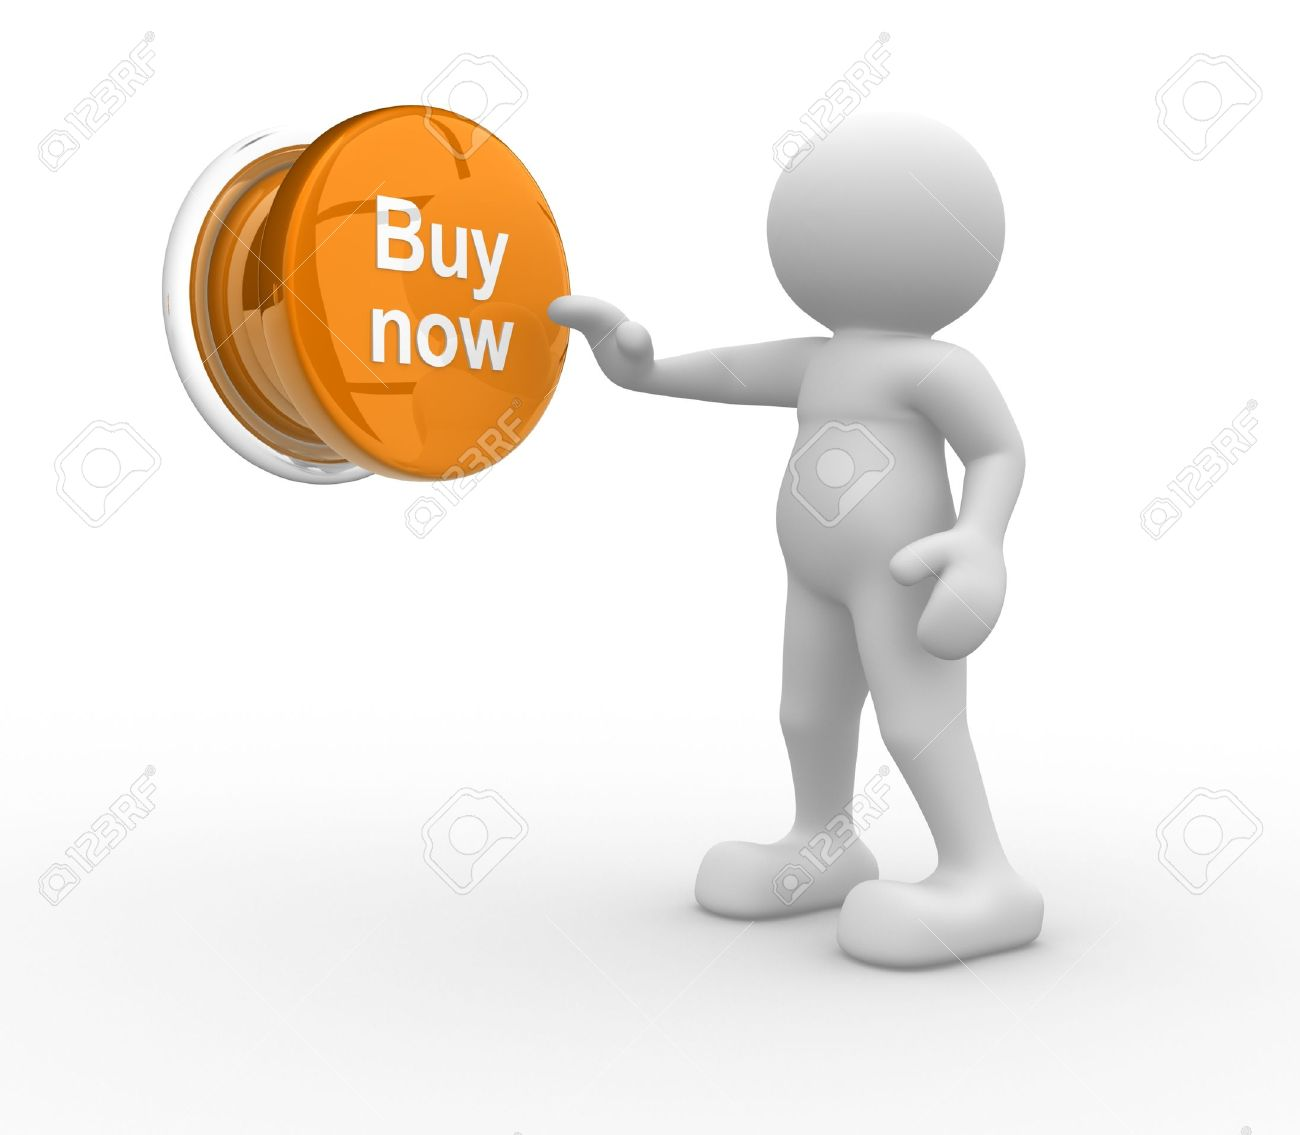 3d people- human character , person pressing a button   Buy now    3d render illustration Stock Illustration - 14801351